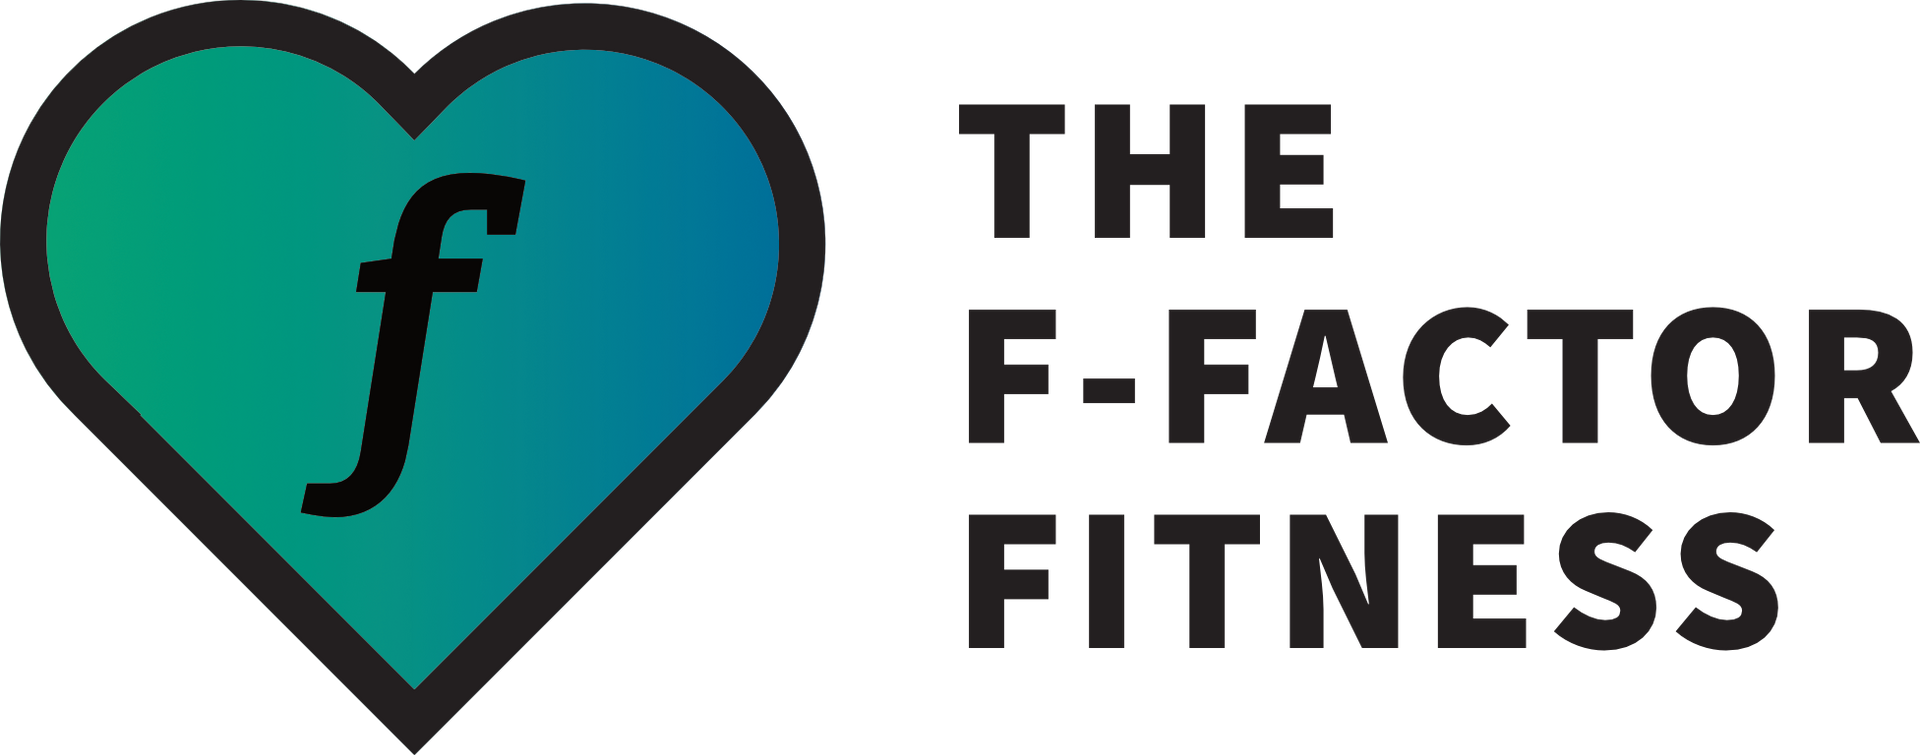 F-Factor Fitness logo D03.png